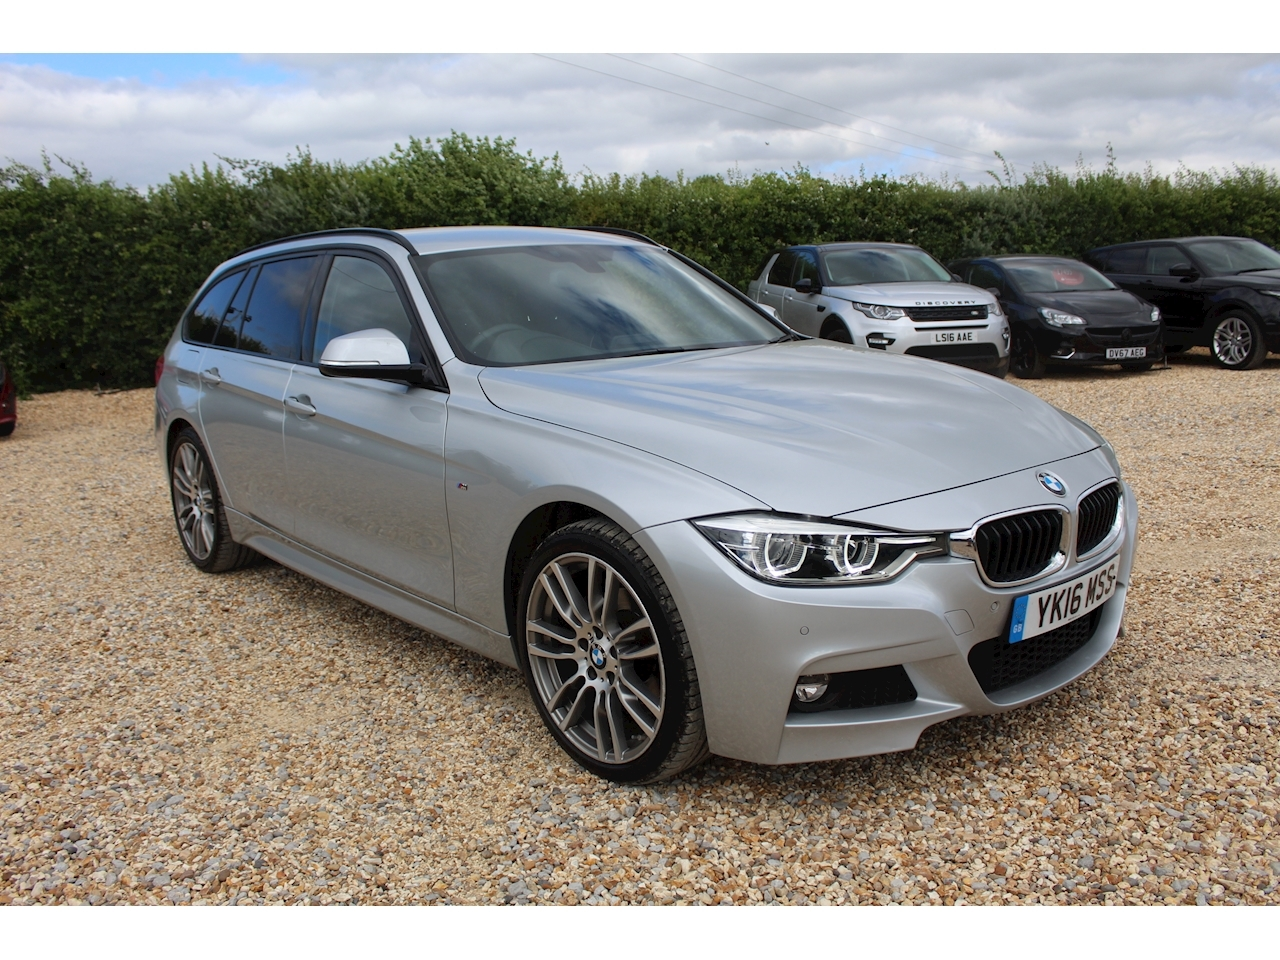 BMW 3 Series 320I Xdrive M Sport Touring Estate 2.0 Automatic Petrol